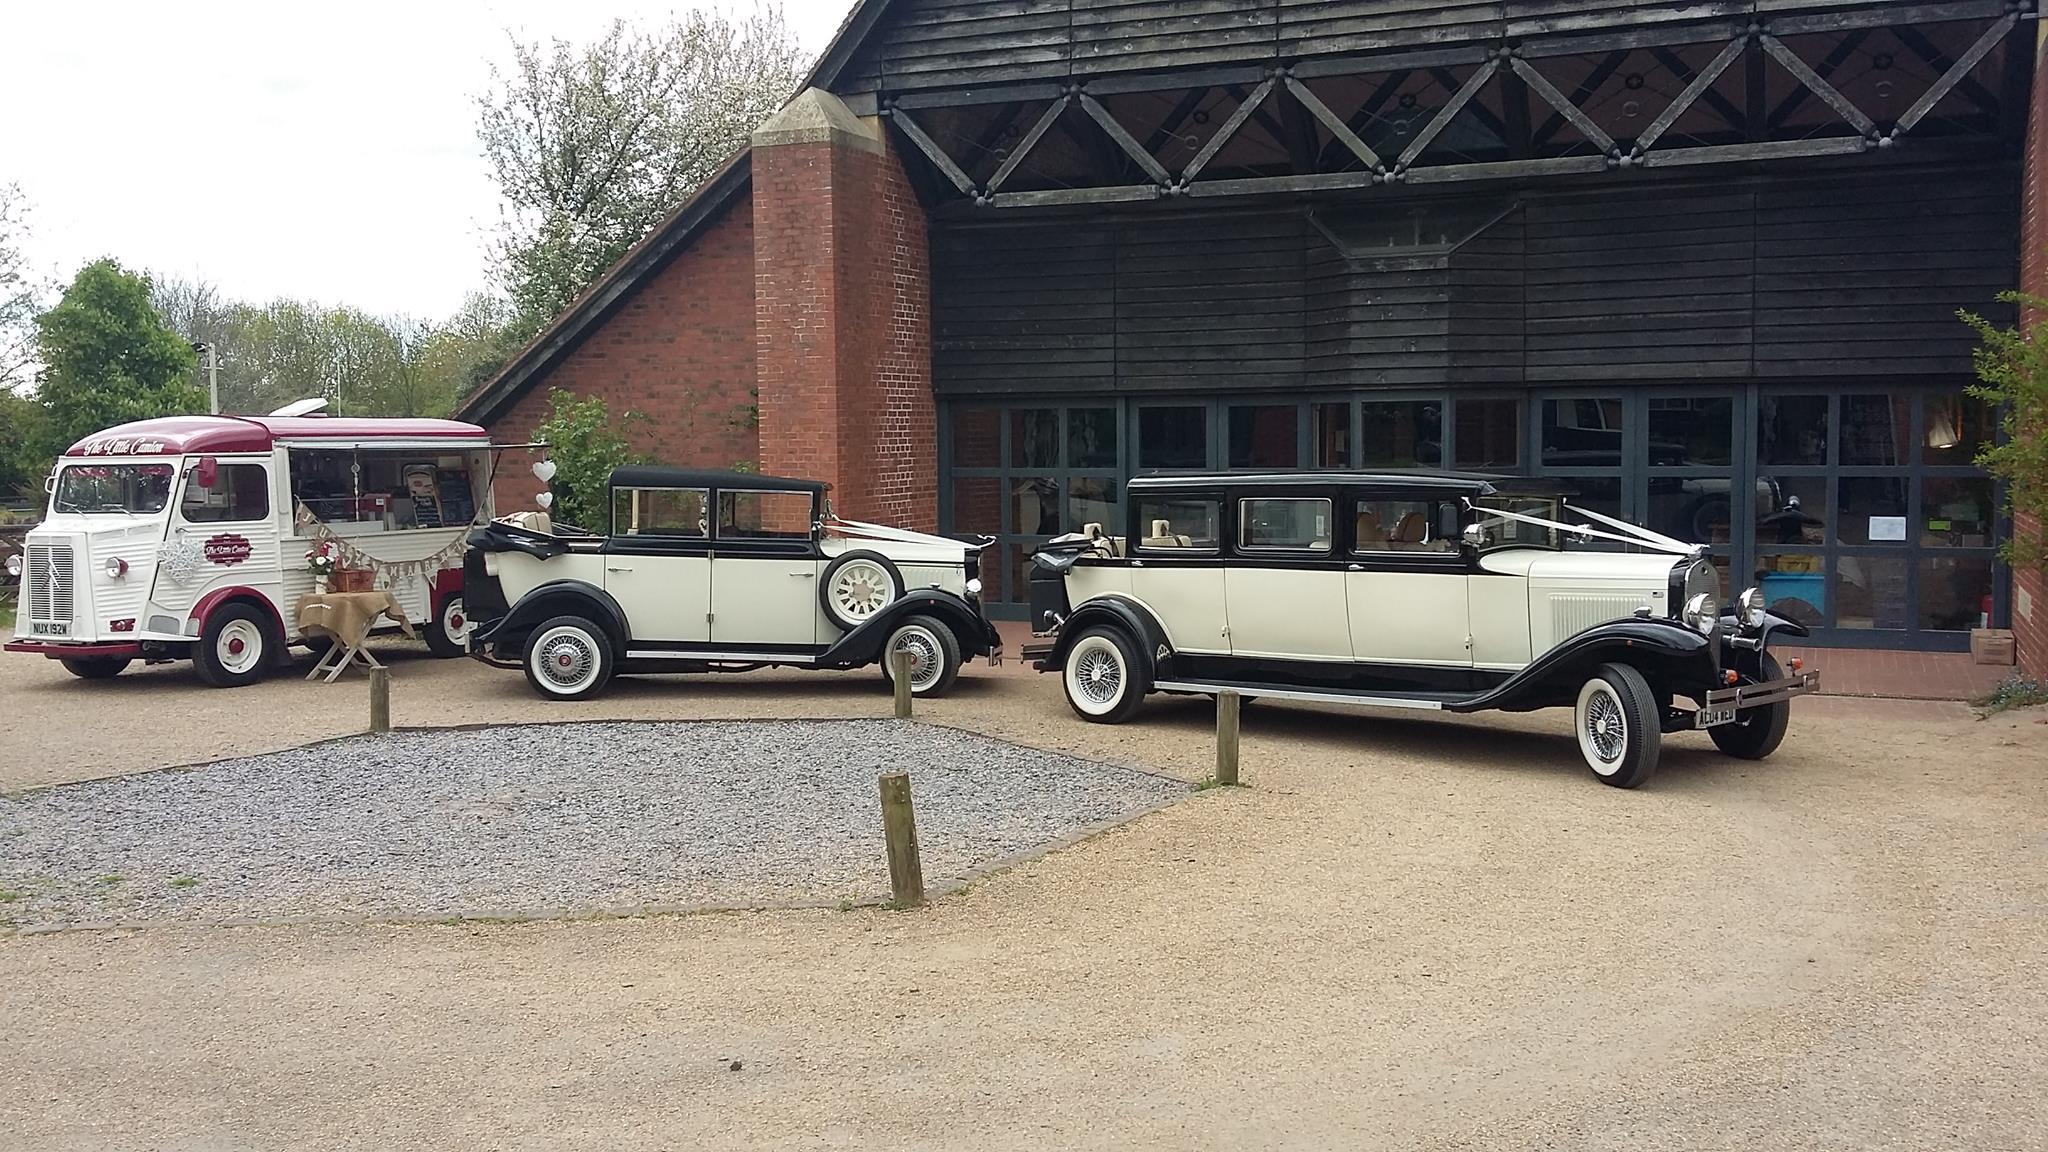 Belfry wedding car hire